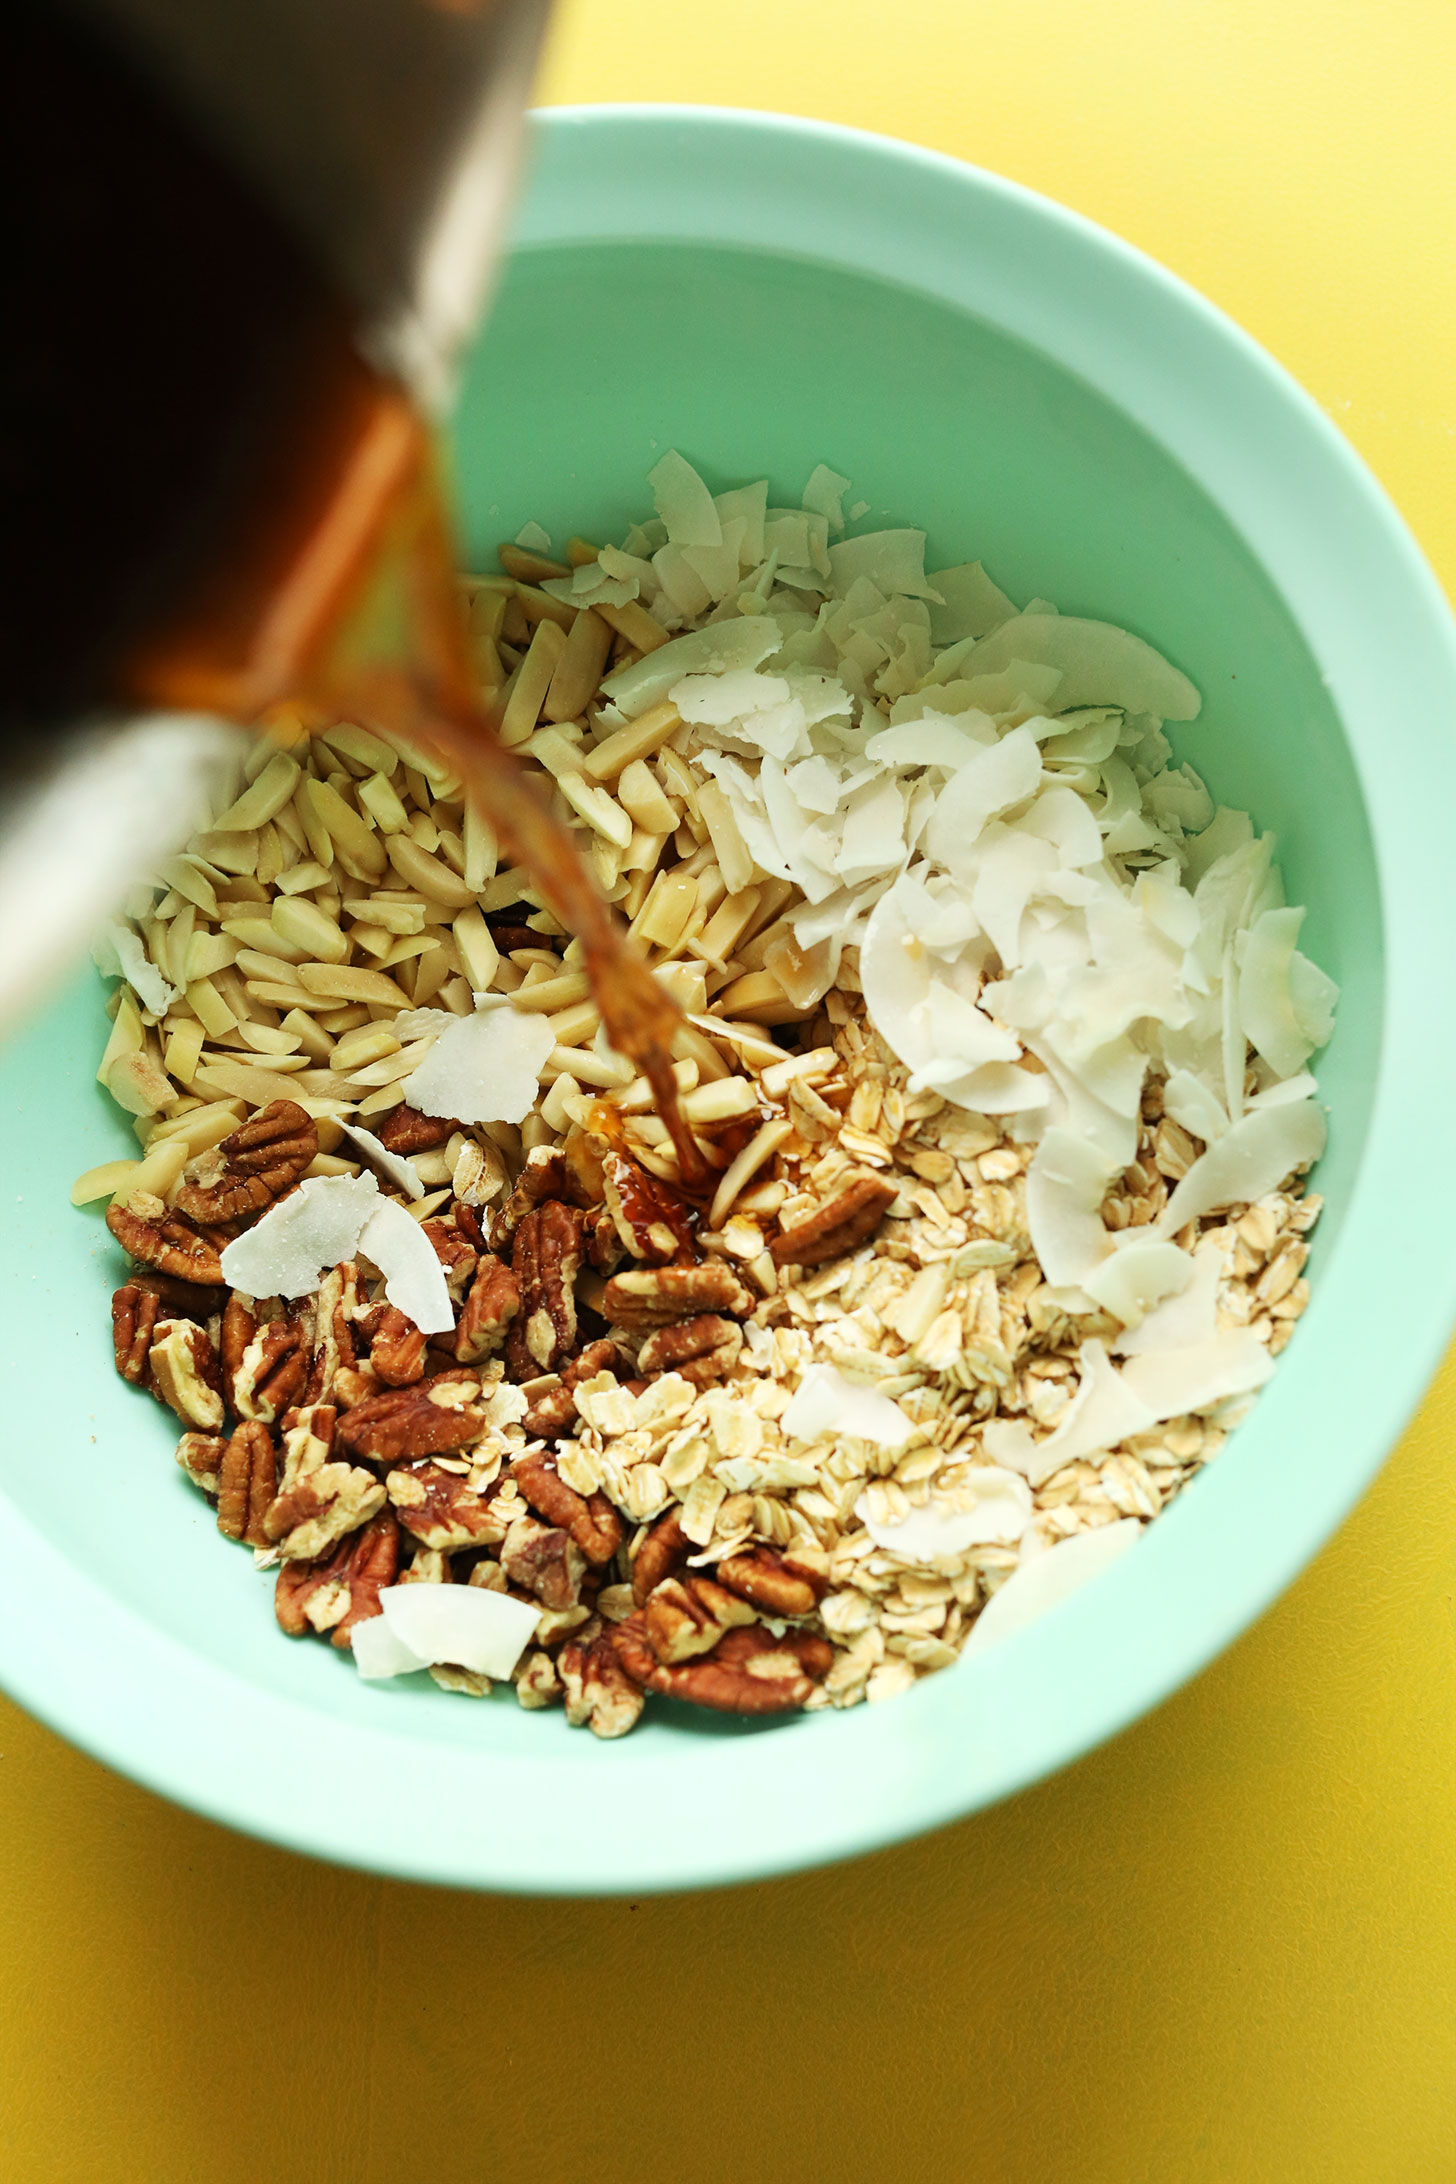 Pouring melted coconut oil maple syrup mixture into dry ingredients for homemade vegan coconut granola